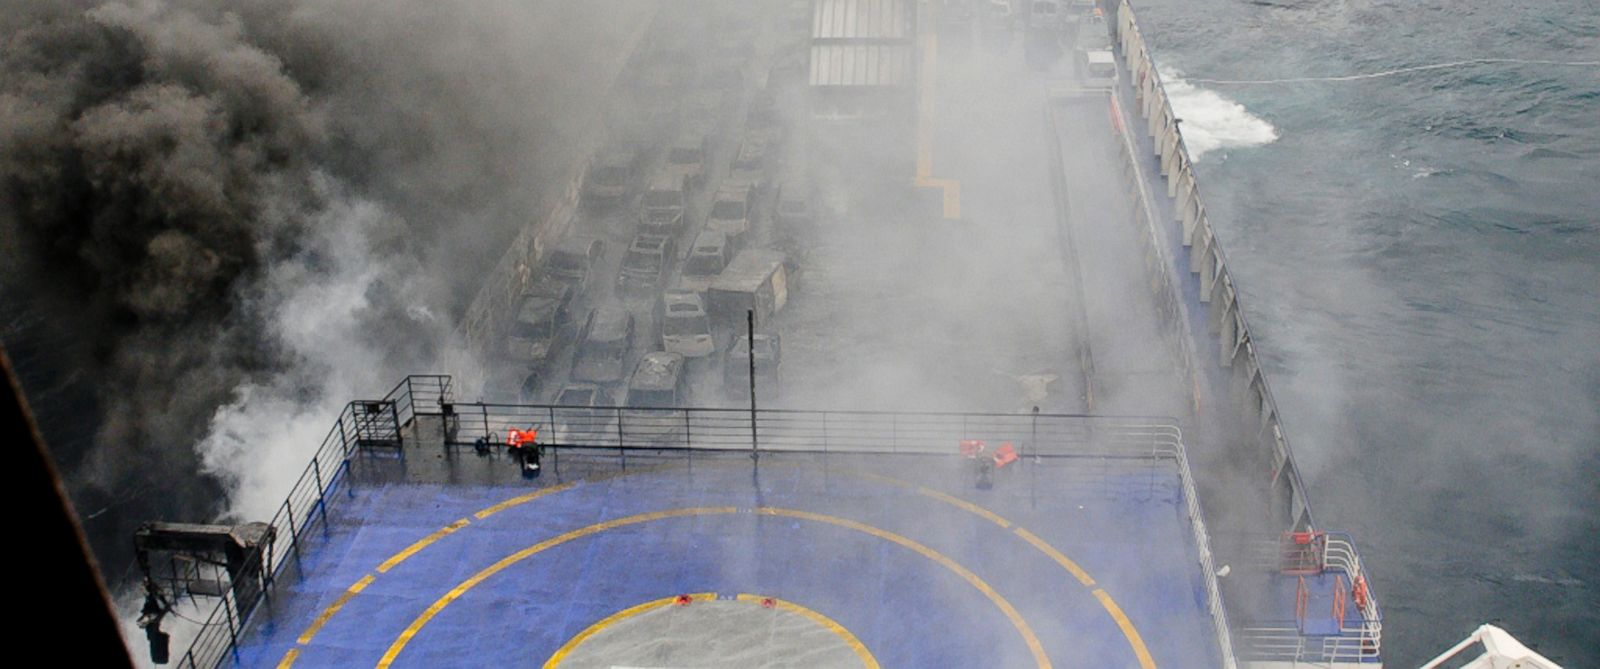 PHOTO: In this image released by the Italian Navy, smoke billows from the Italian-flagged ferry Norman Atlantic that caught fire in the Adriatic Sea, Dec. 28, 2014.